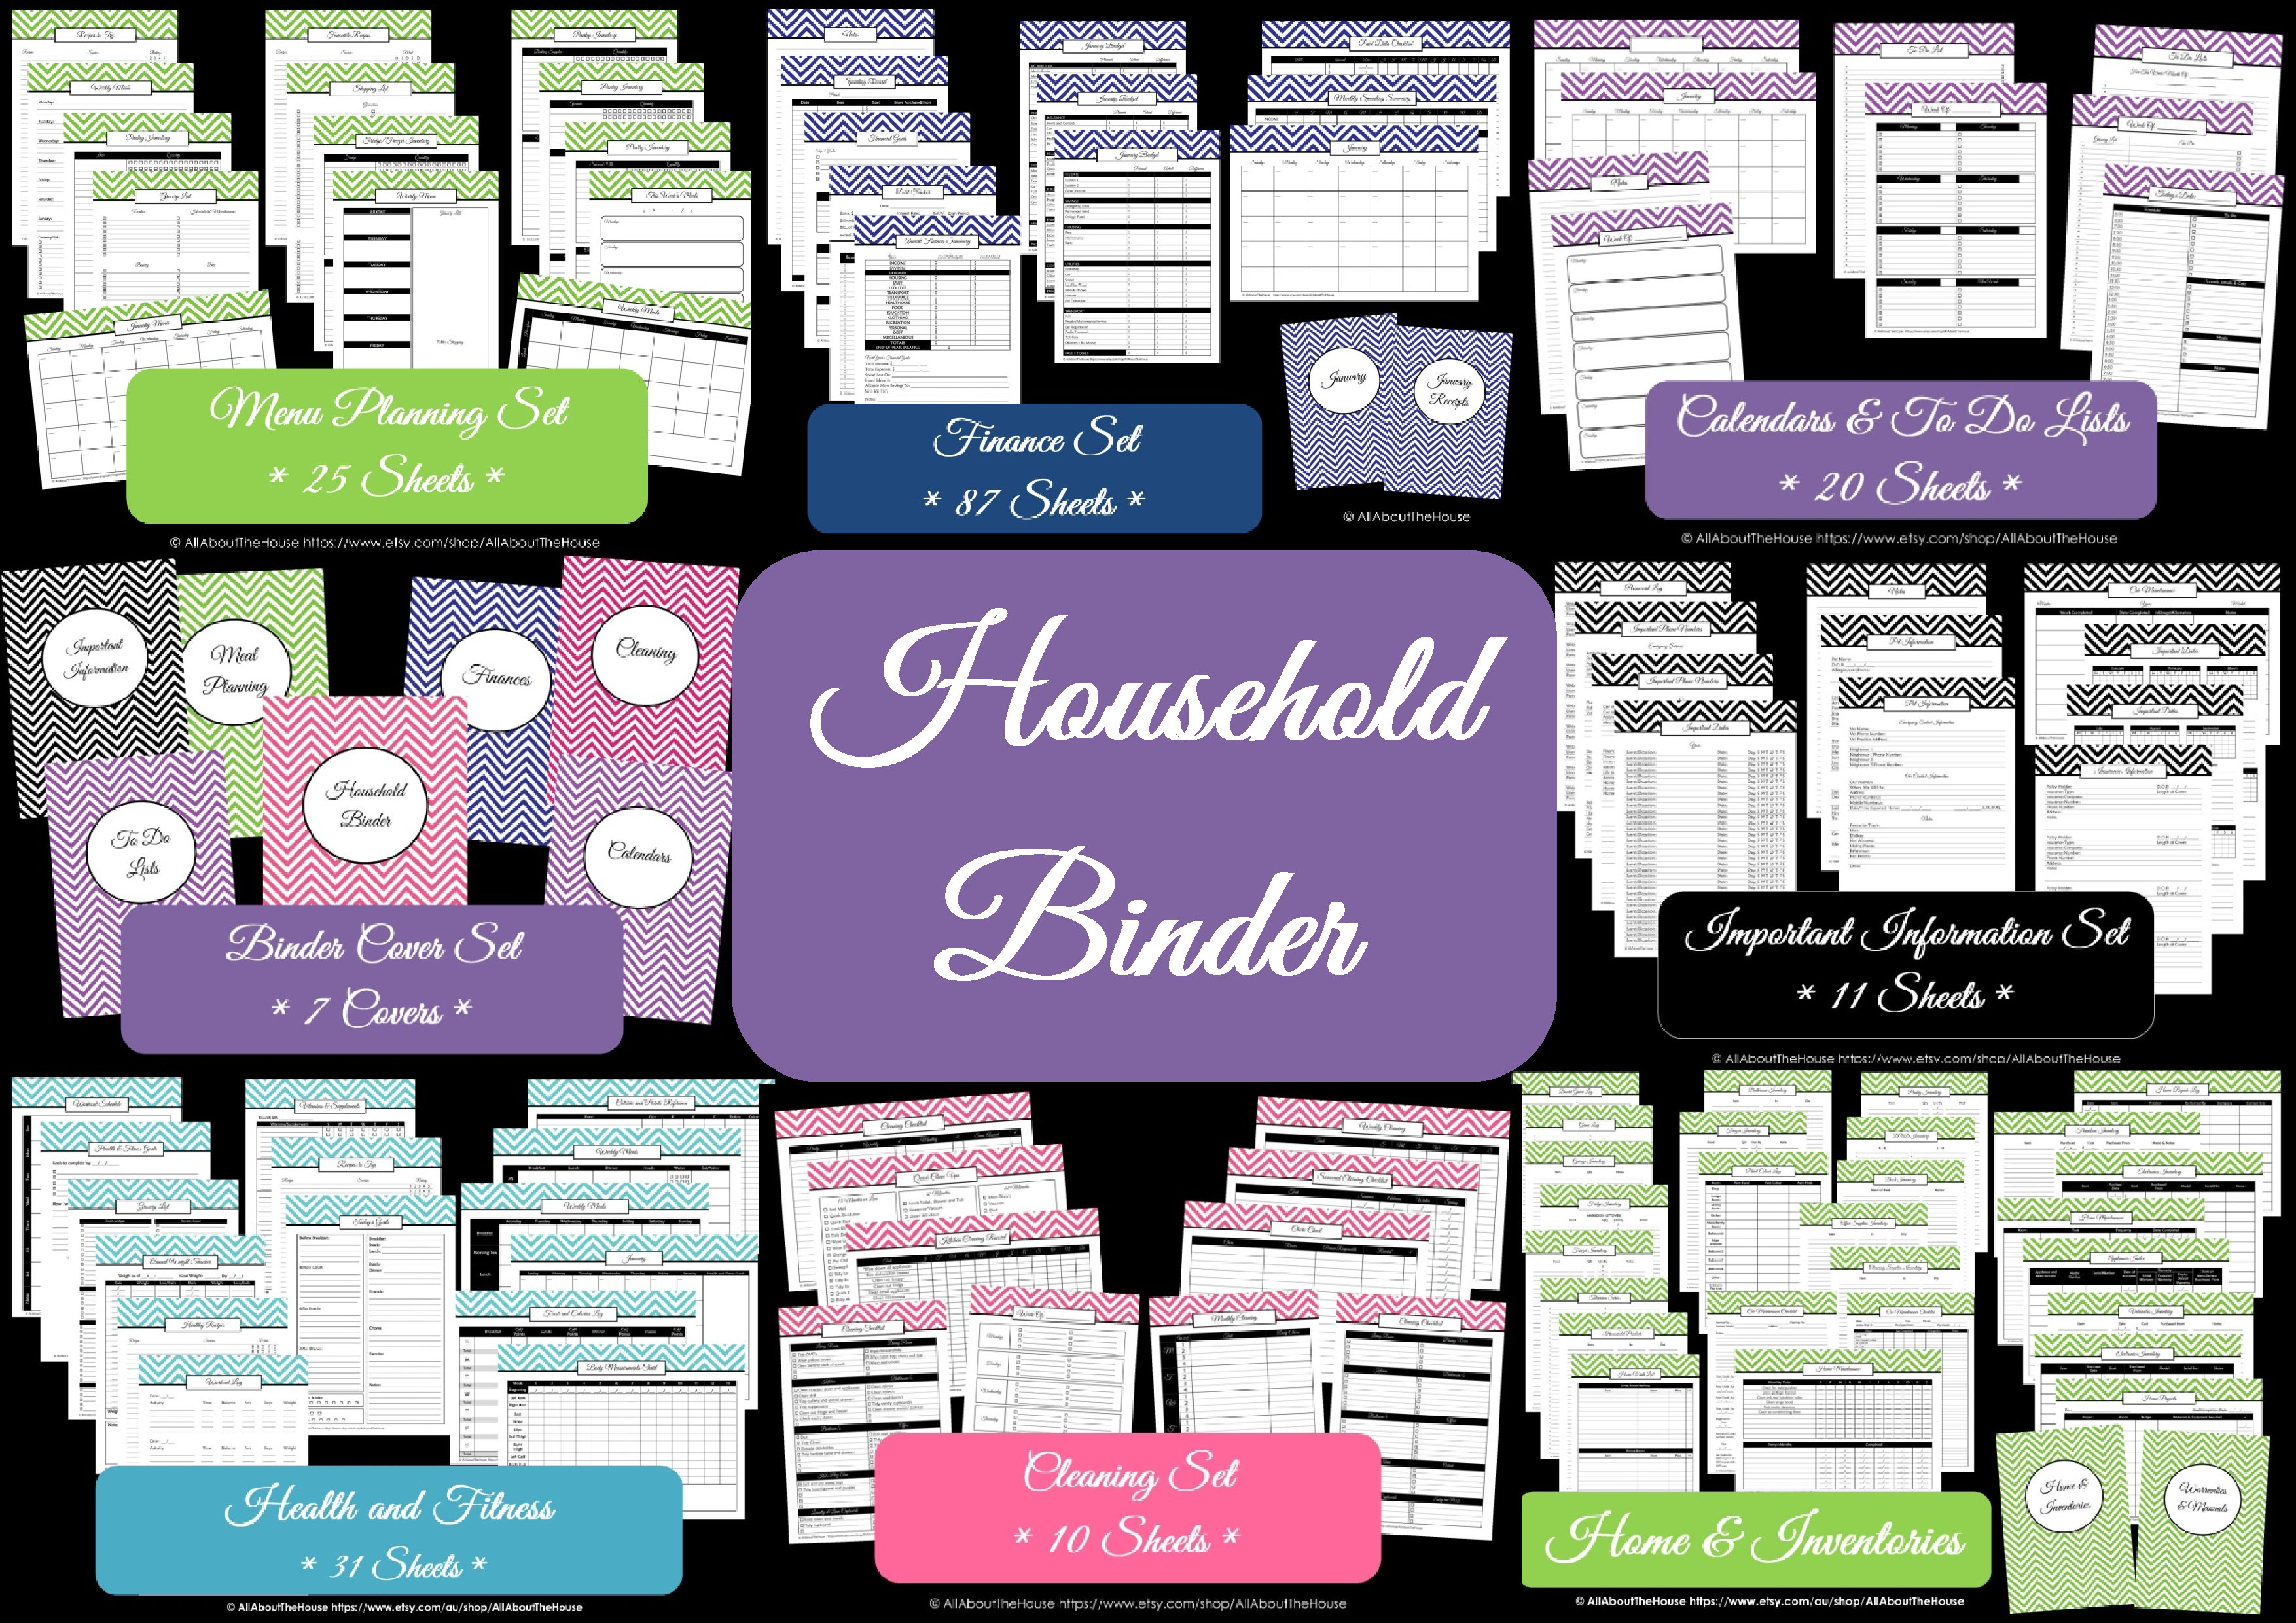 Household Binder - AllAboutTheHouse